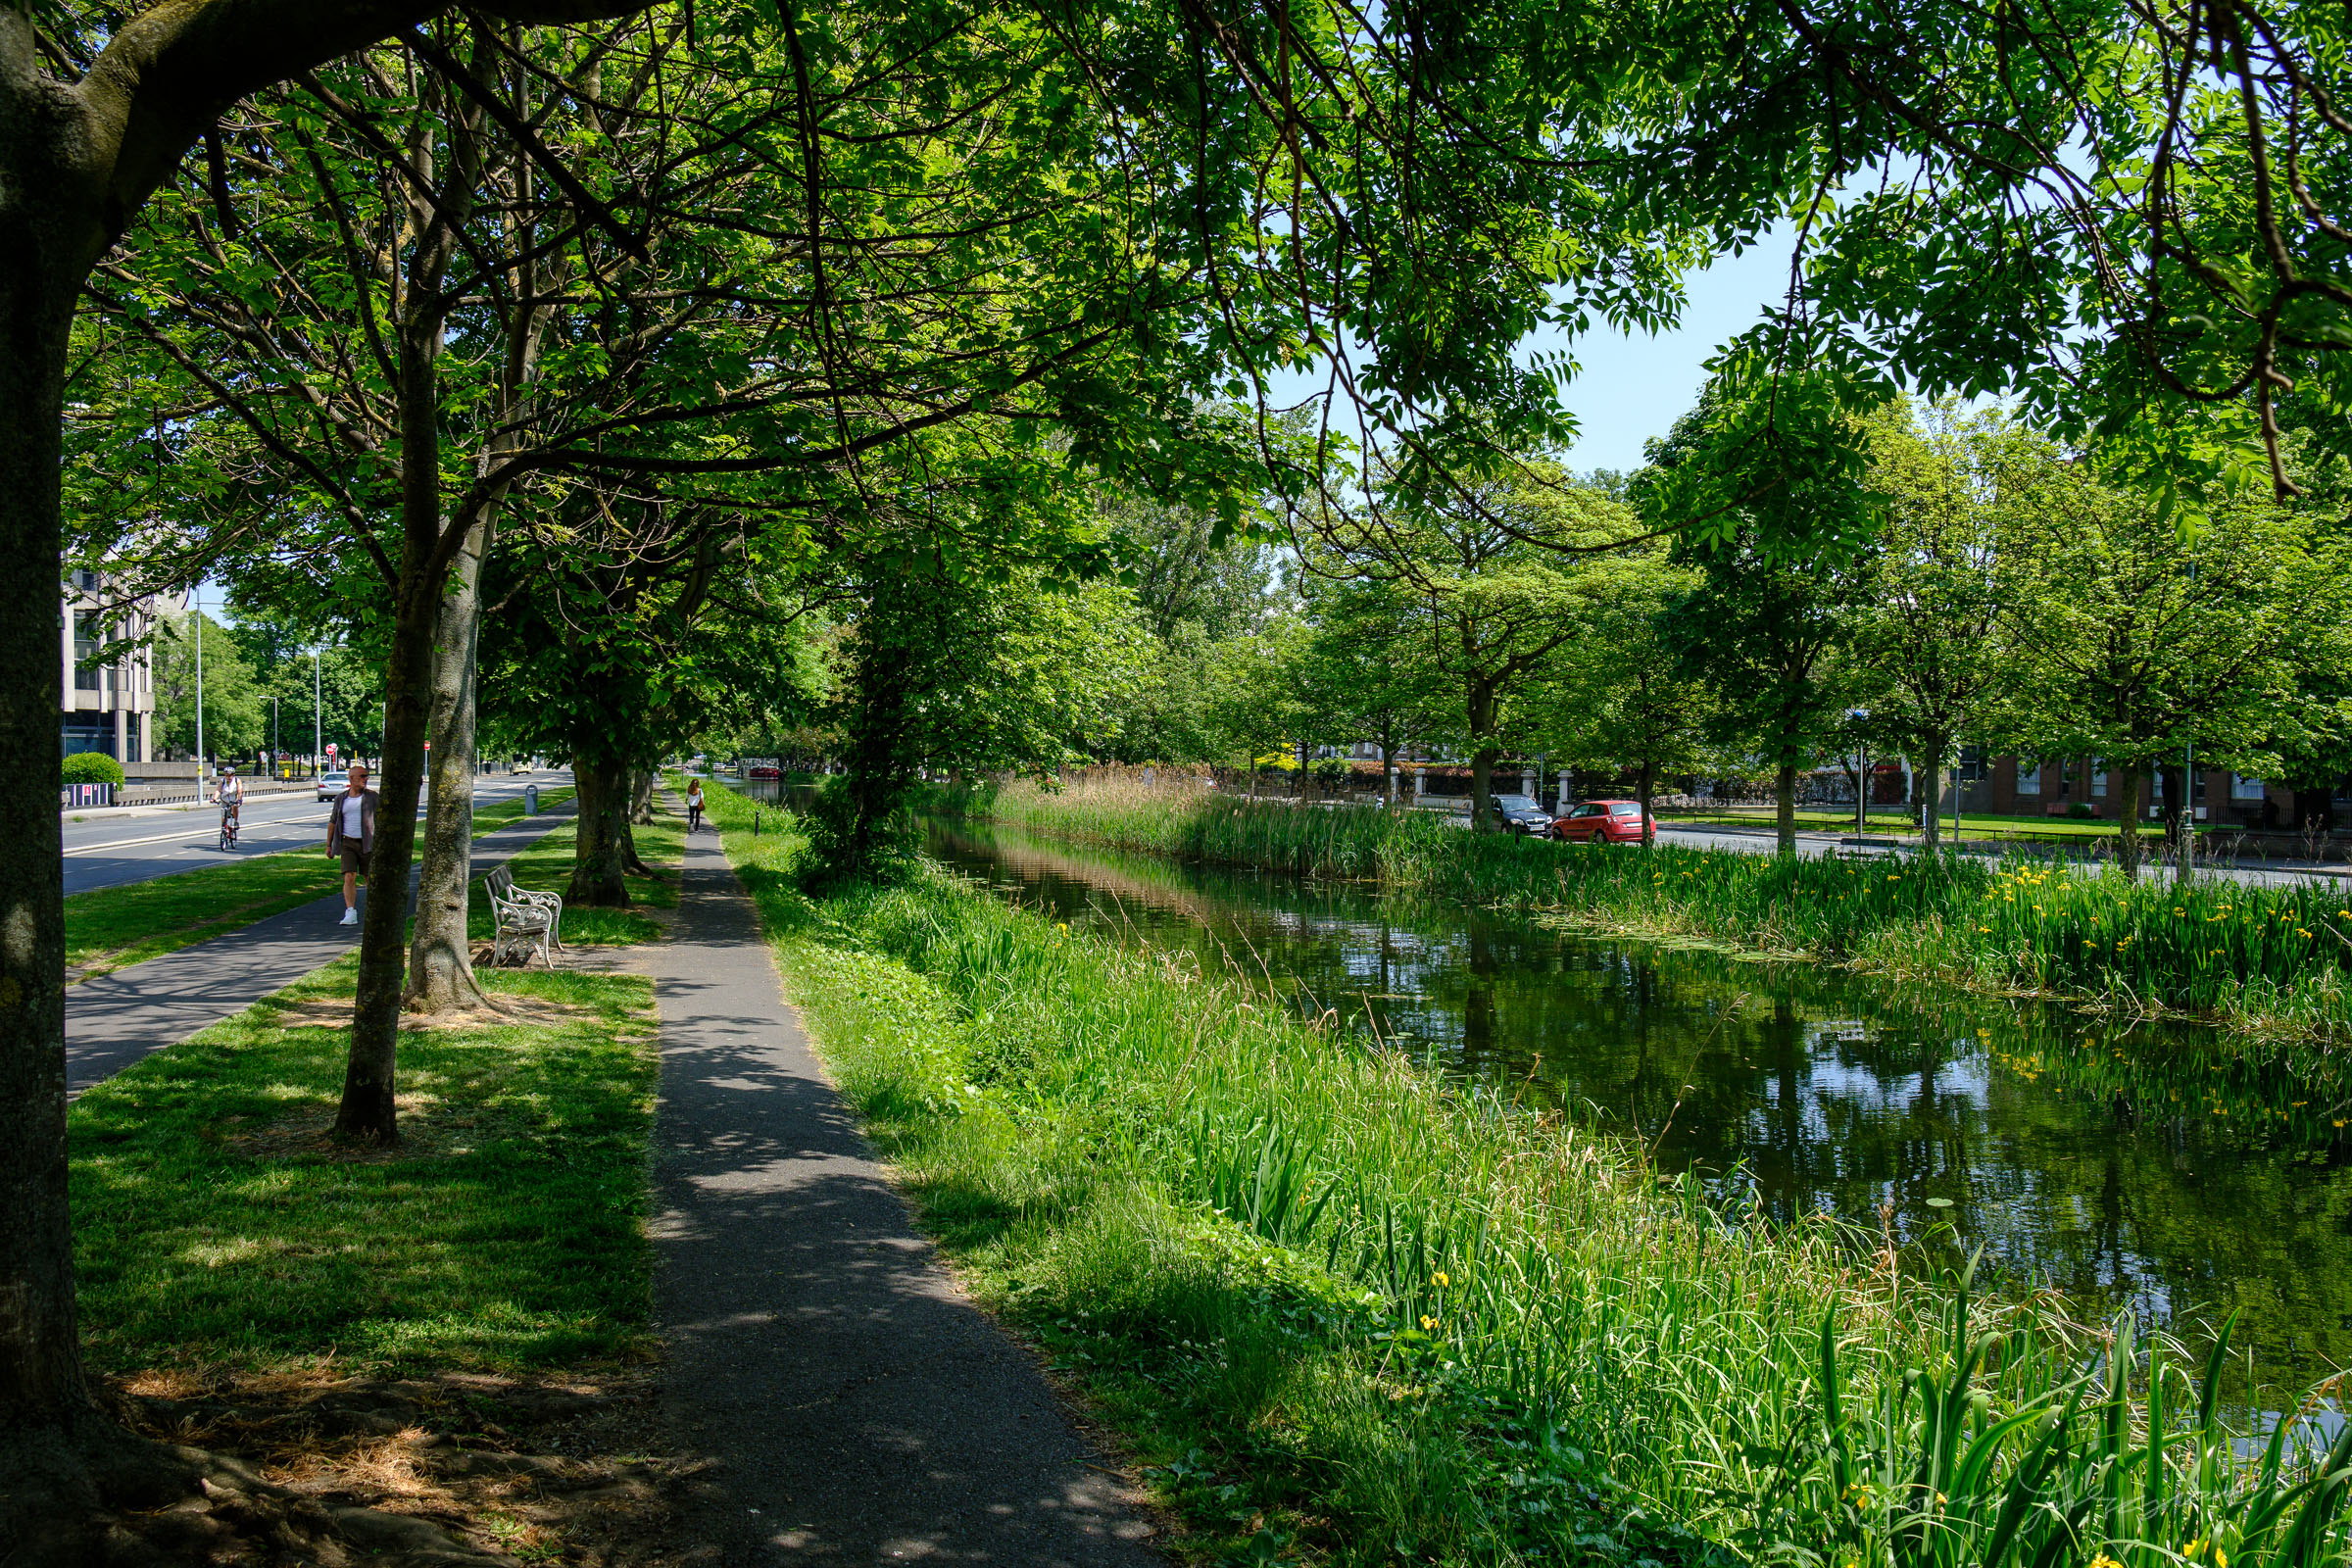 Path by the Canal Image from Fuji X-Pro 2 converted with Iridient X-Transformer